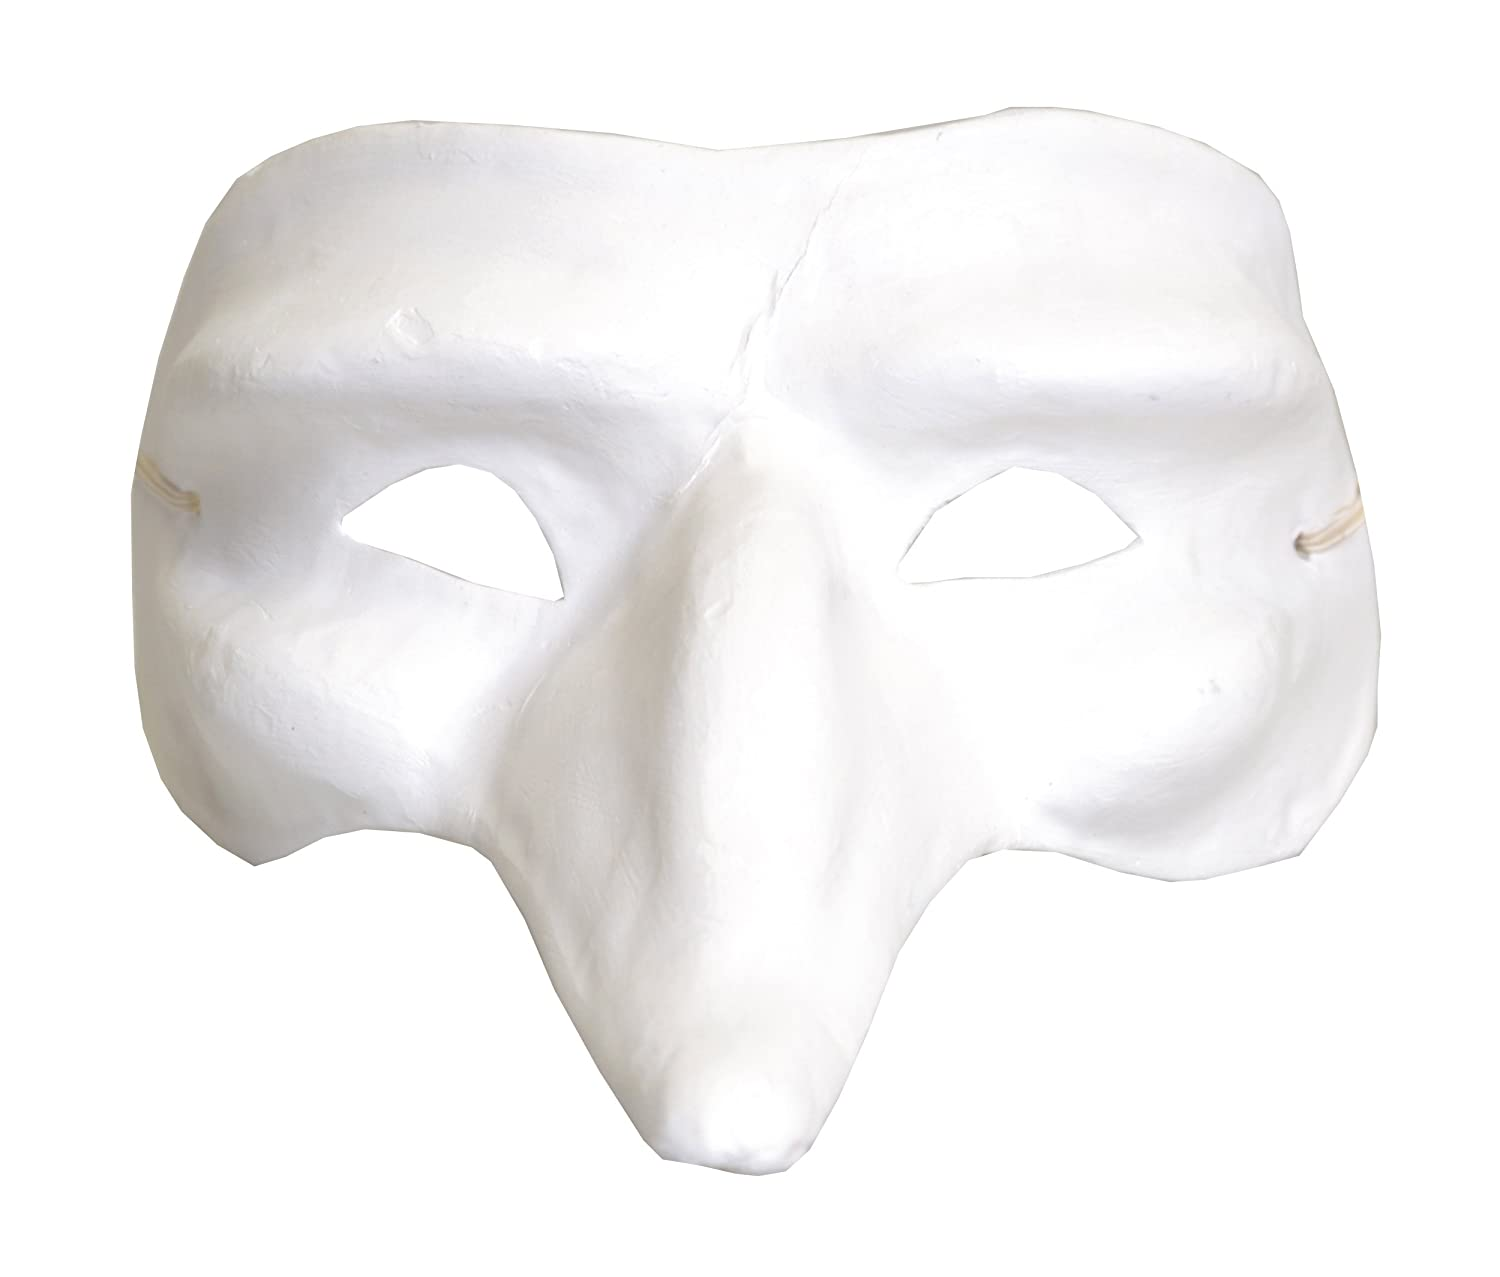 Artemio Long Hooked Nose Plaster Mask to Decorate 14030016